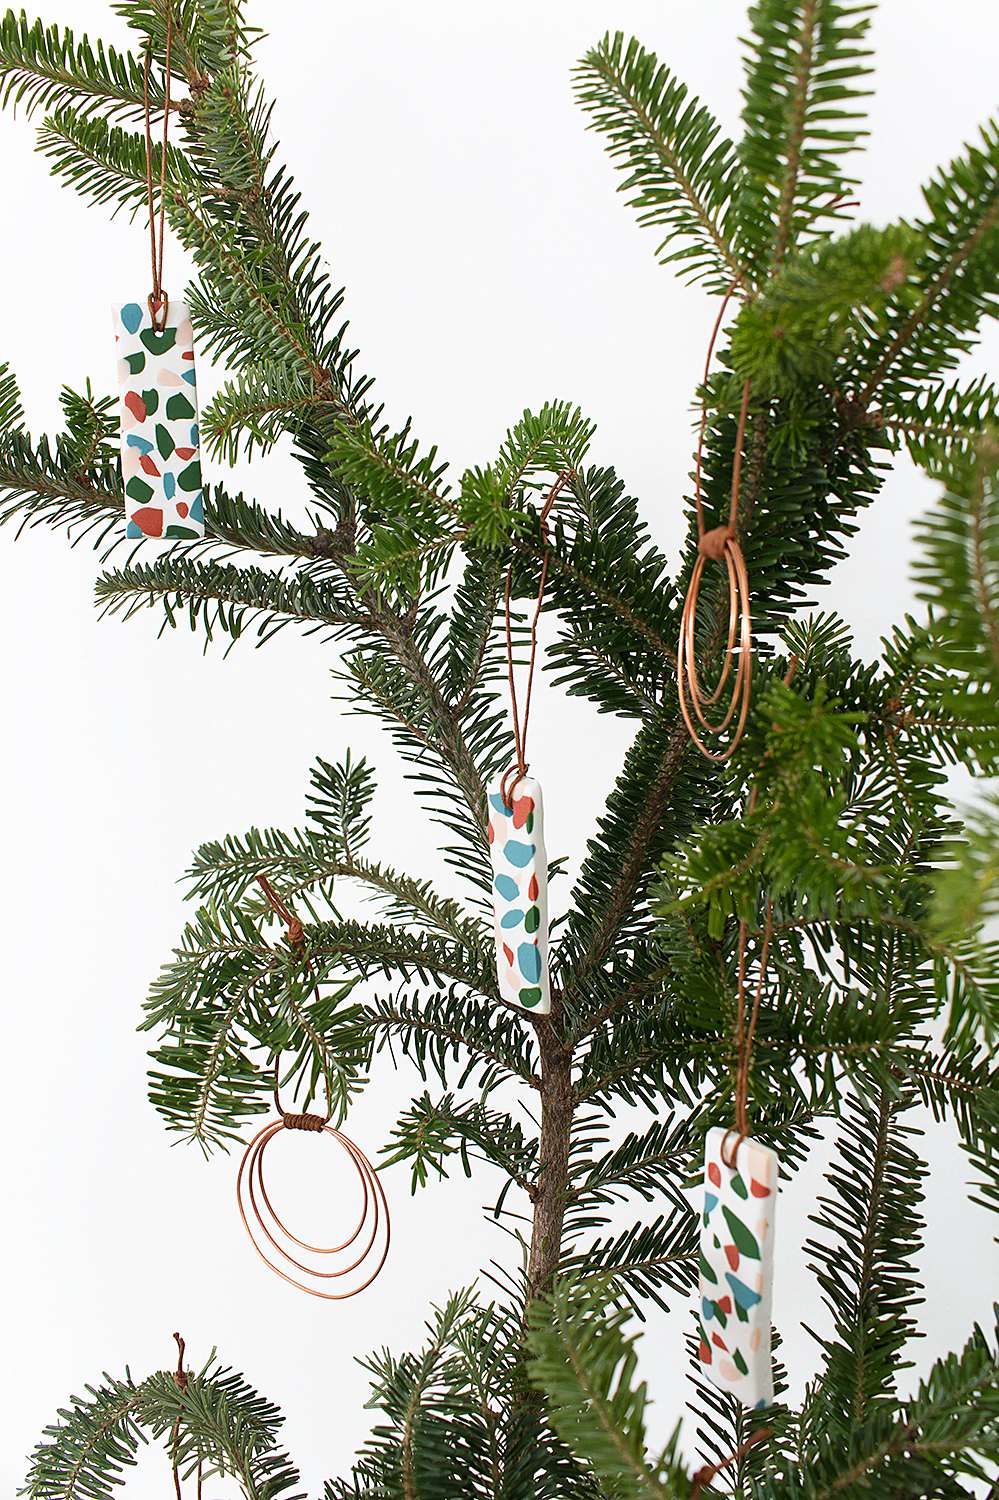 Add a little boho bling to your holiday decor with these easy DIY Copper Wire Hoop Ornaments that take just ten minutes to make!